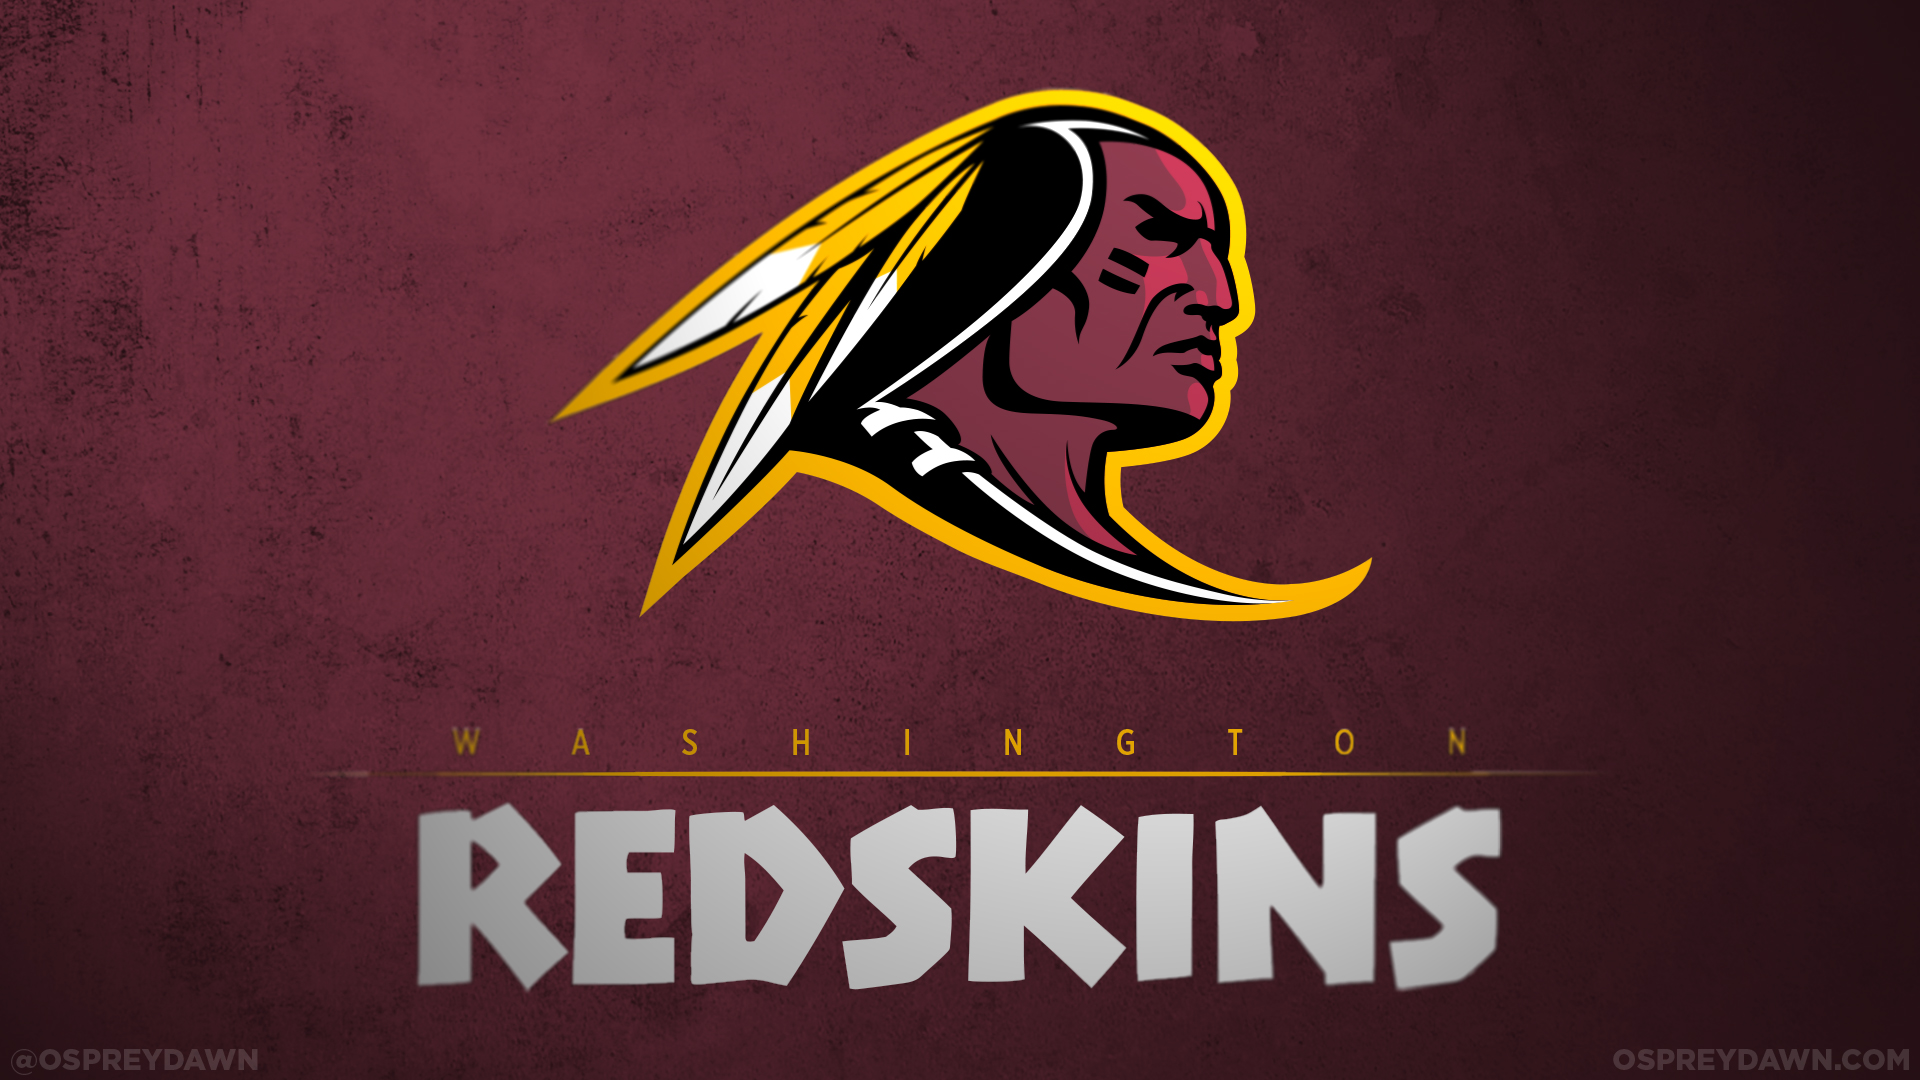 WASHINGTON REDSKINS nfl football f wallpaper 1920x1080 155270 1920x1080